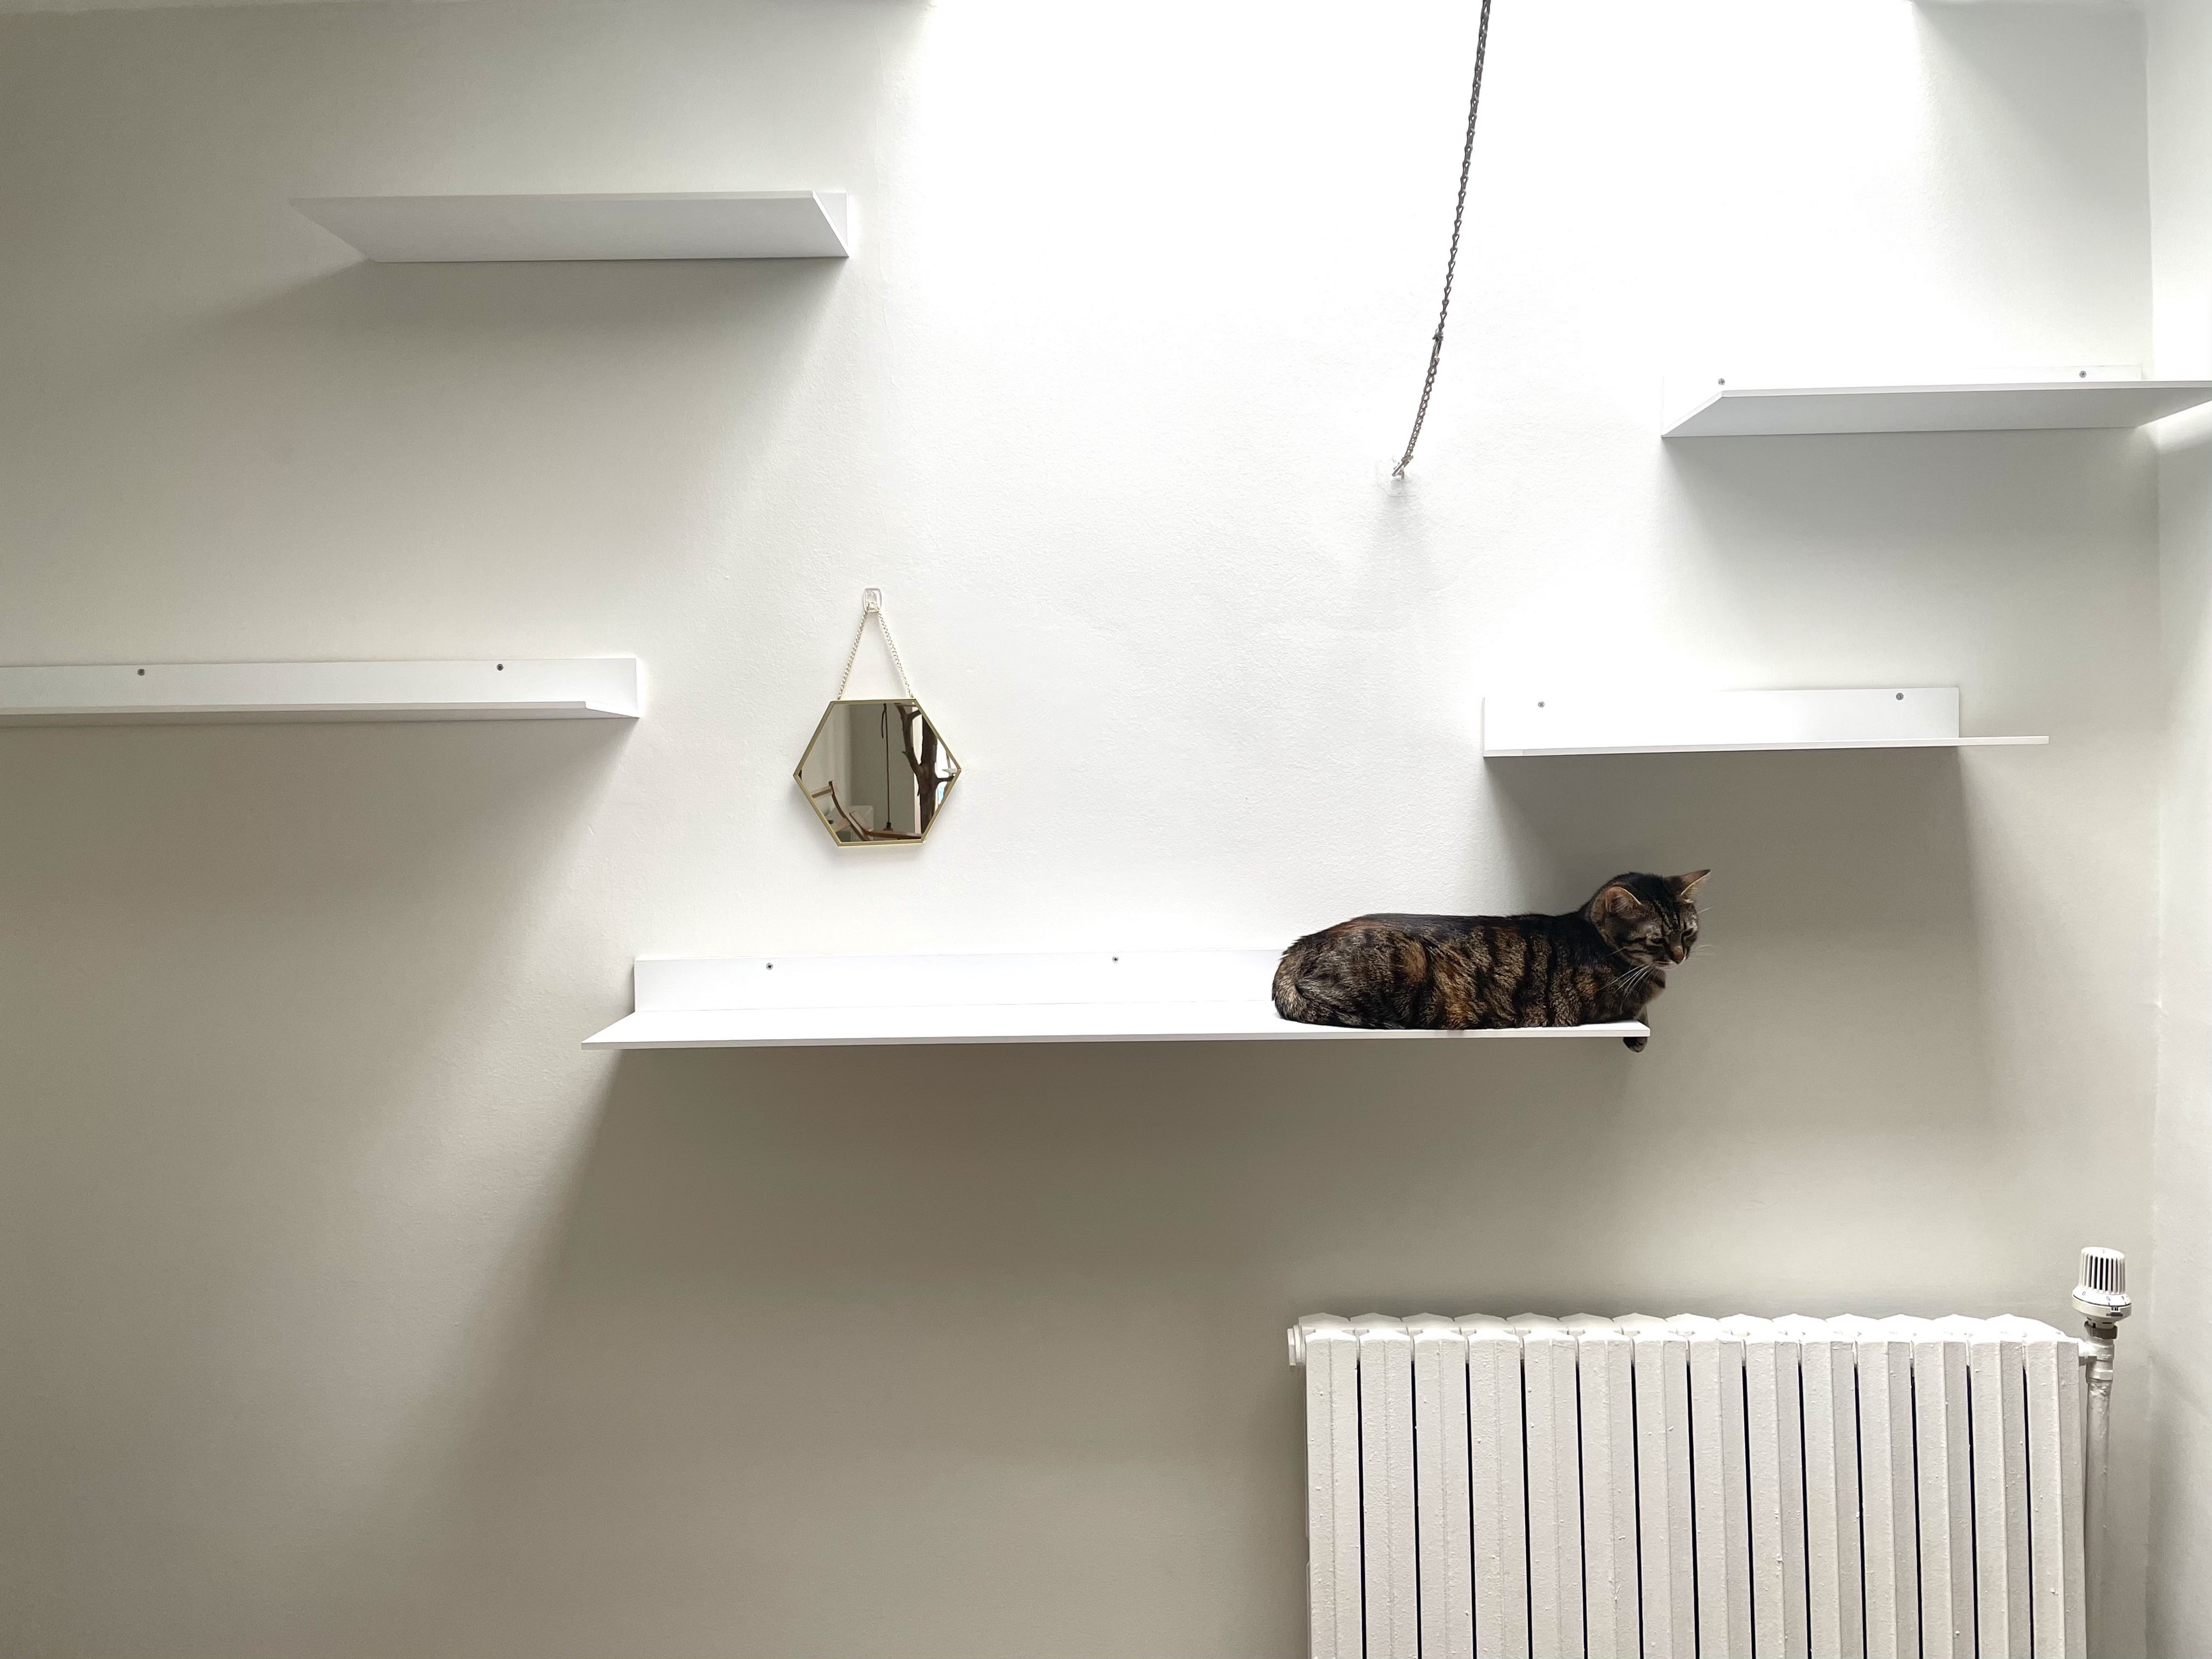 White wall with white shelves, mirror, radiator, and a cat.